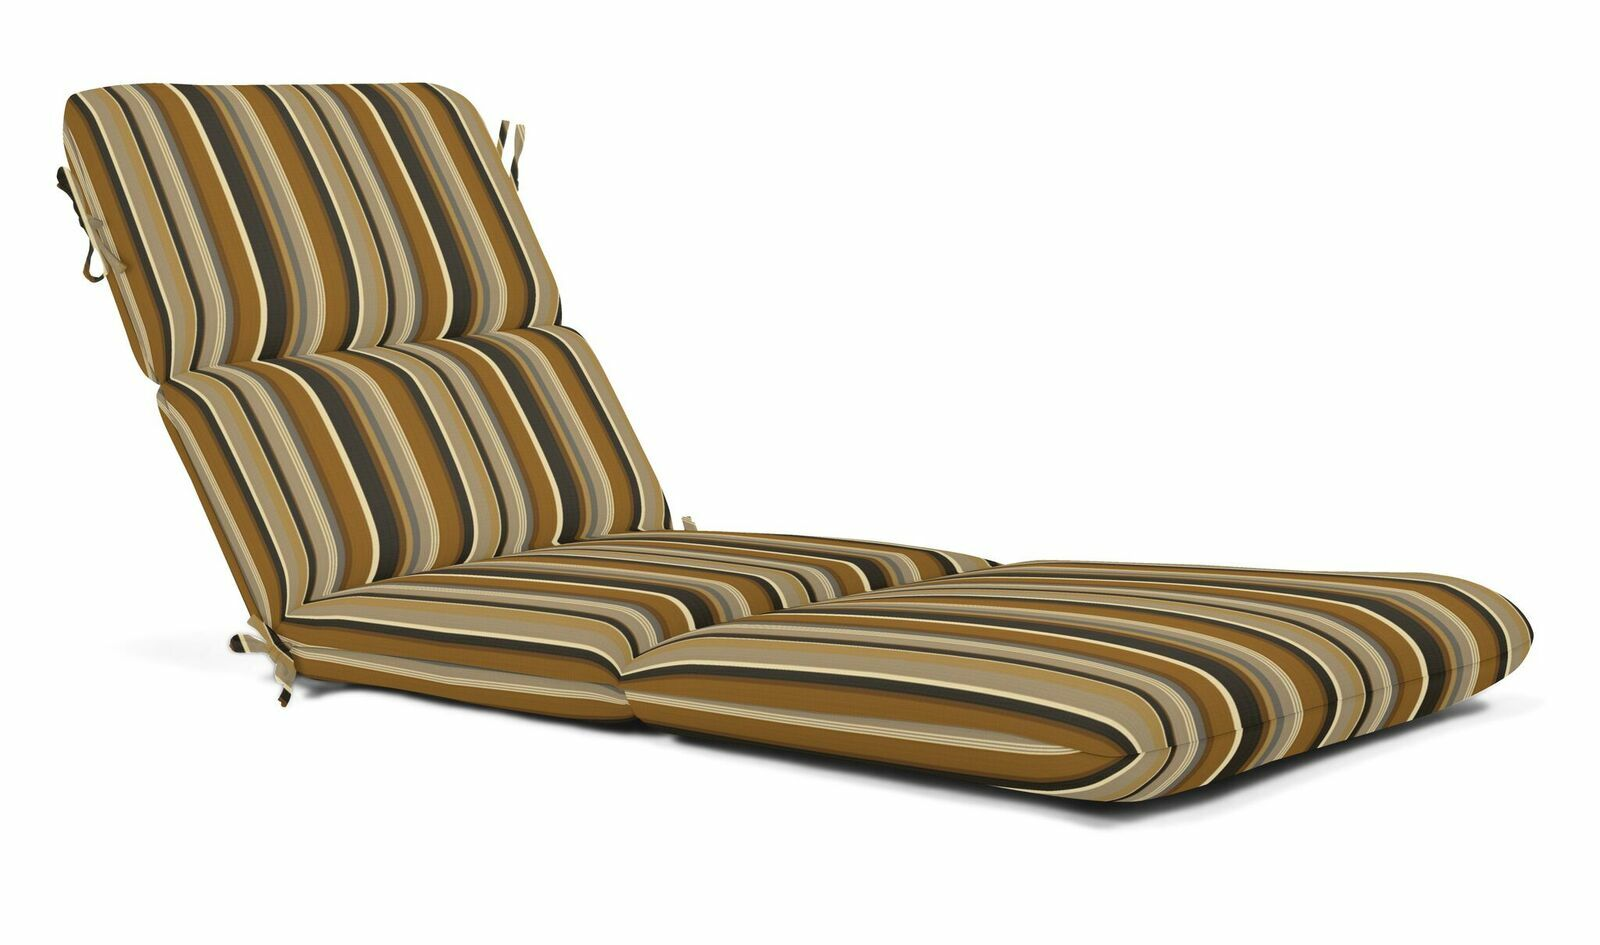 Indoor/Outdoor Chaise Lounge Cushion Fabric: Espresso